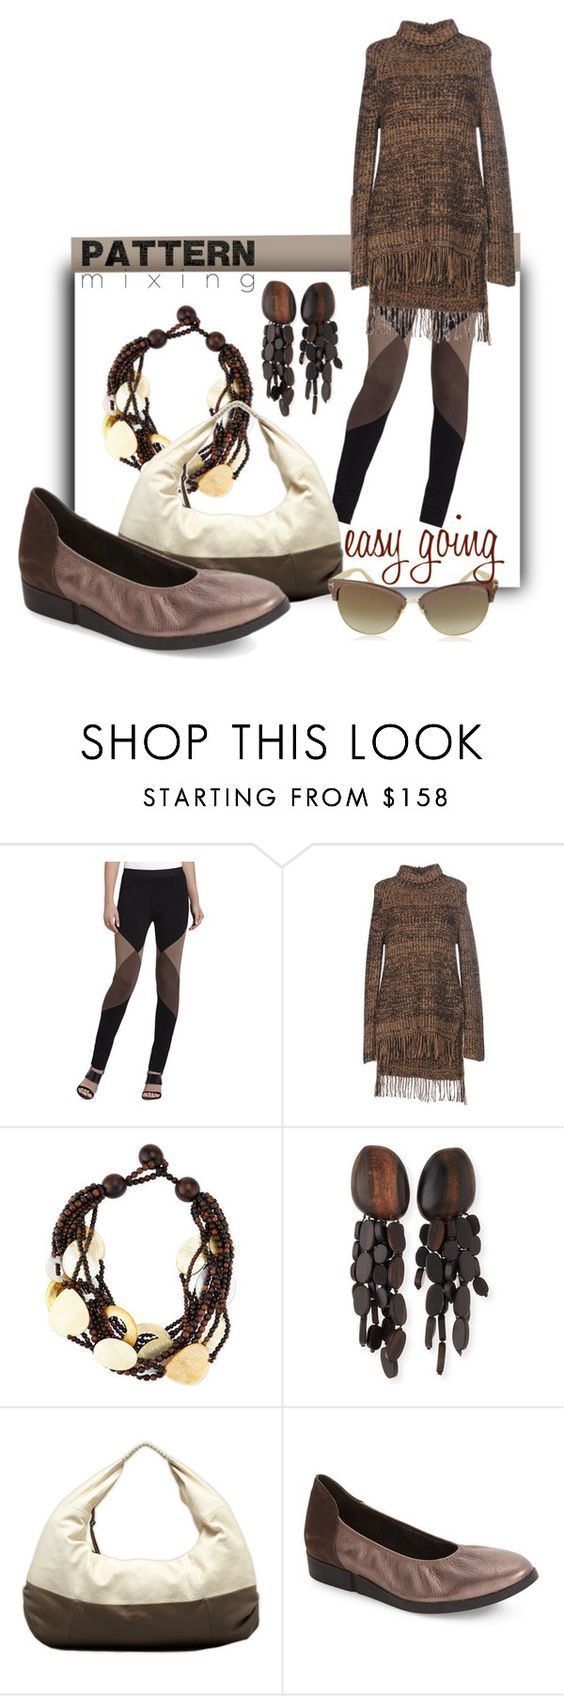 """Easy Going Pattern Mixing"" by simply-one ❤ liked on Polyvore featuring BCBGMAXAZRIA, Sportmax, Viktoria Hayman, Arche, Tom Ford and patternmixing"